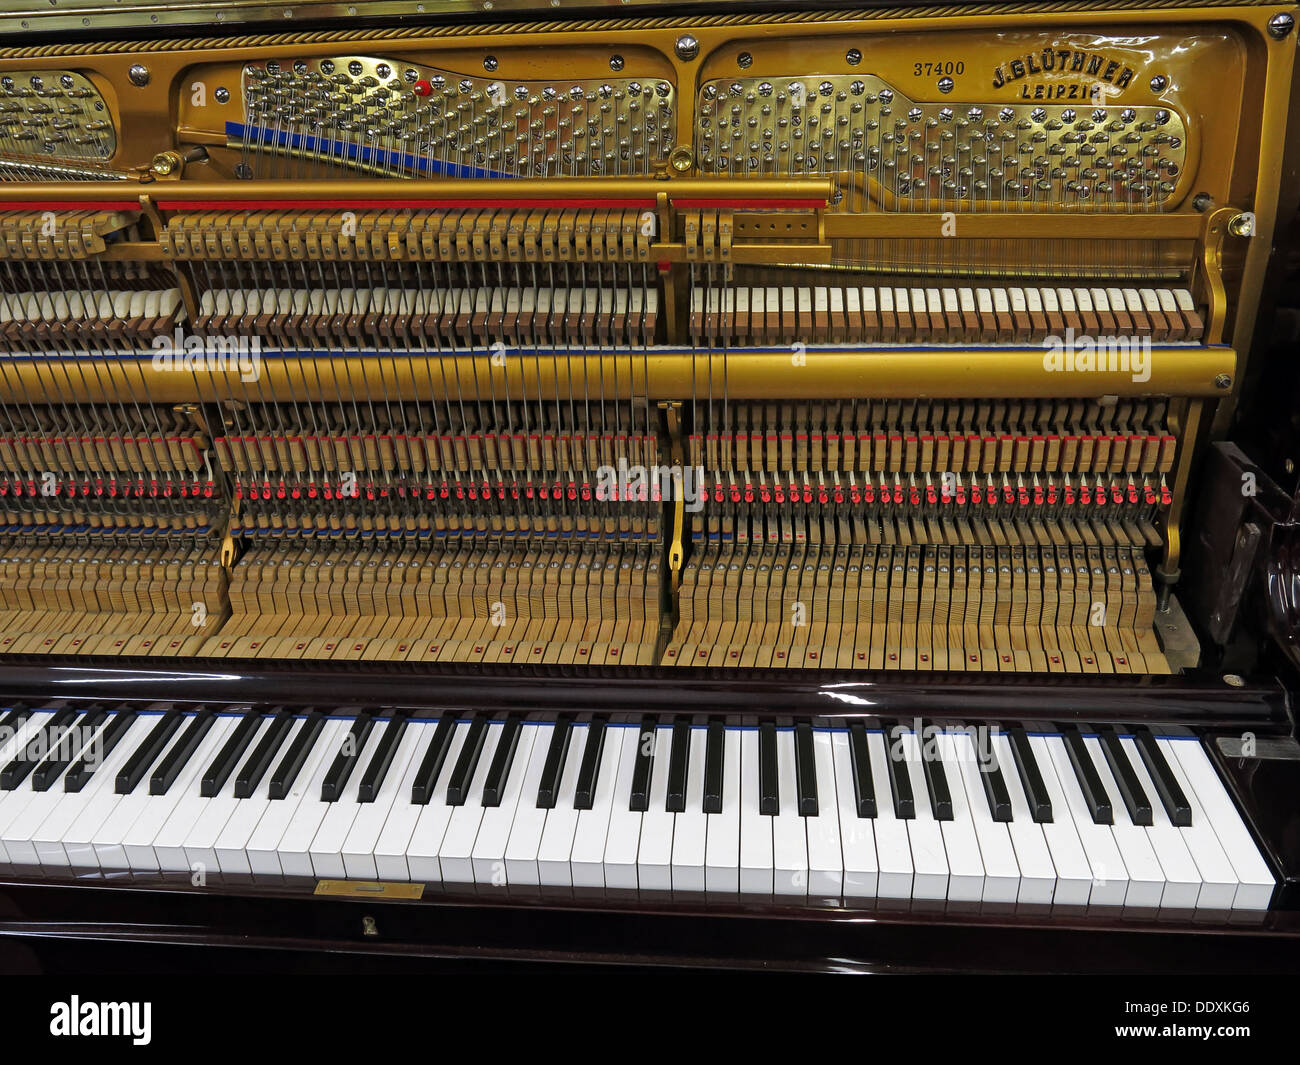 Bluthner Piano detail 37400, keys, mechanism, Leipzig, Germany Stock Photo